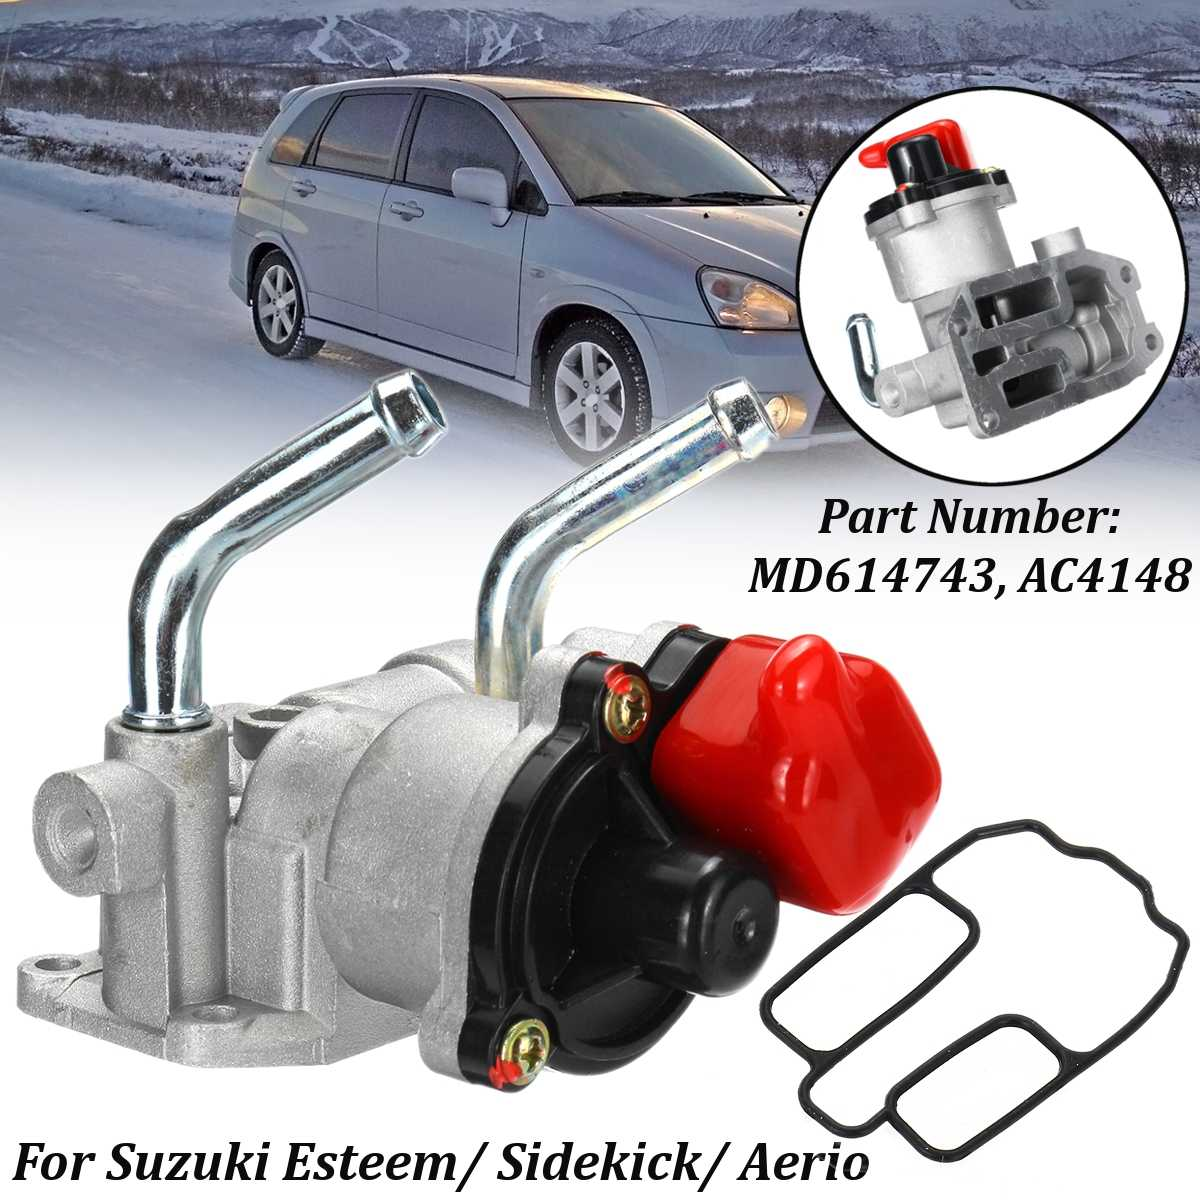 MD614743 AC4148 Idle Air Control Valve With Gasket 6 Pin For Suzuki Esteem Sidekick Aerio for Mitsubishi Mirage